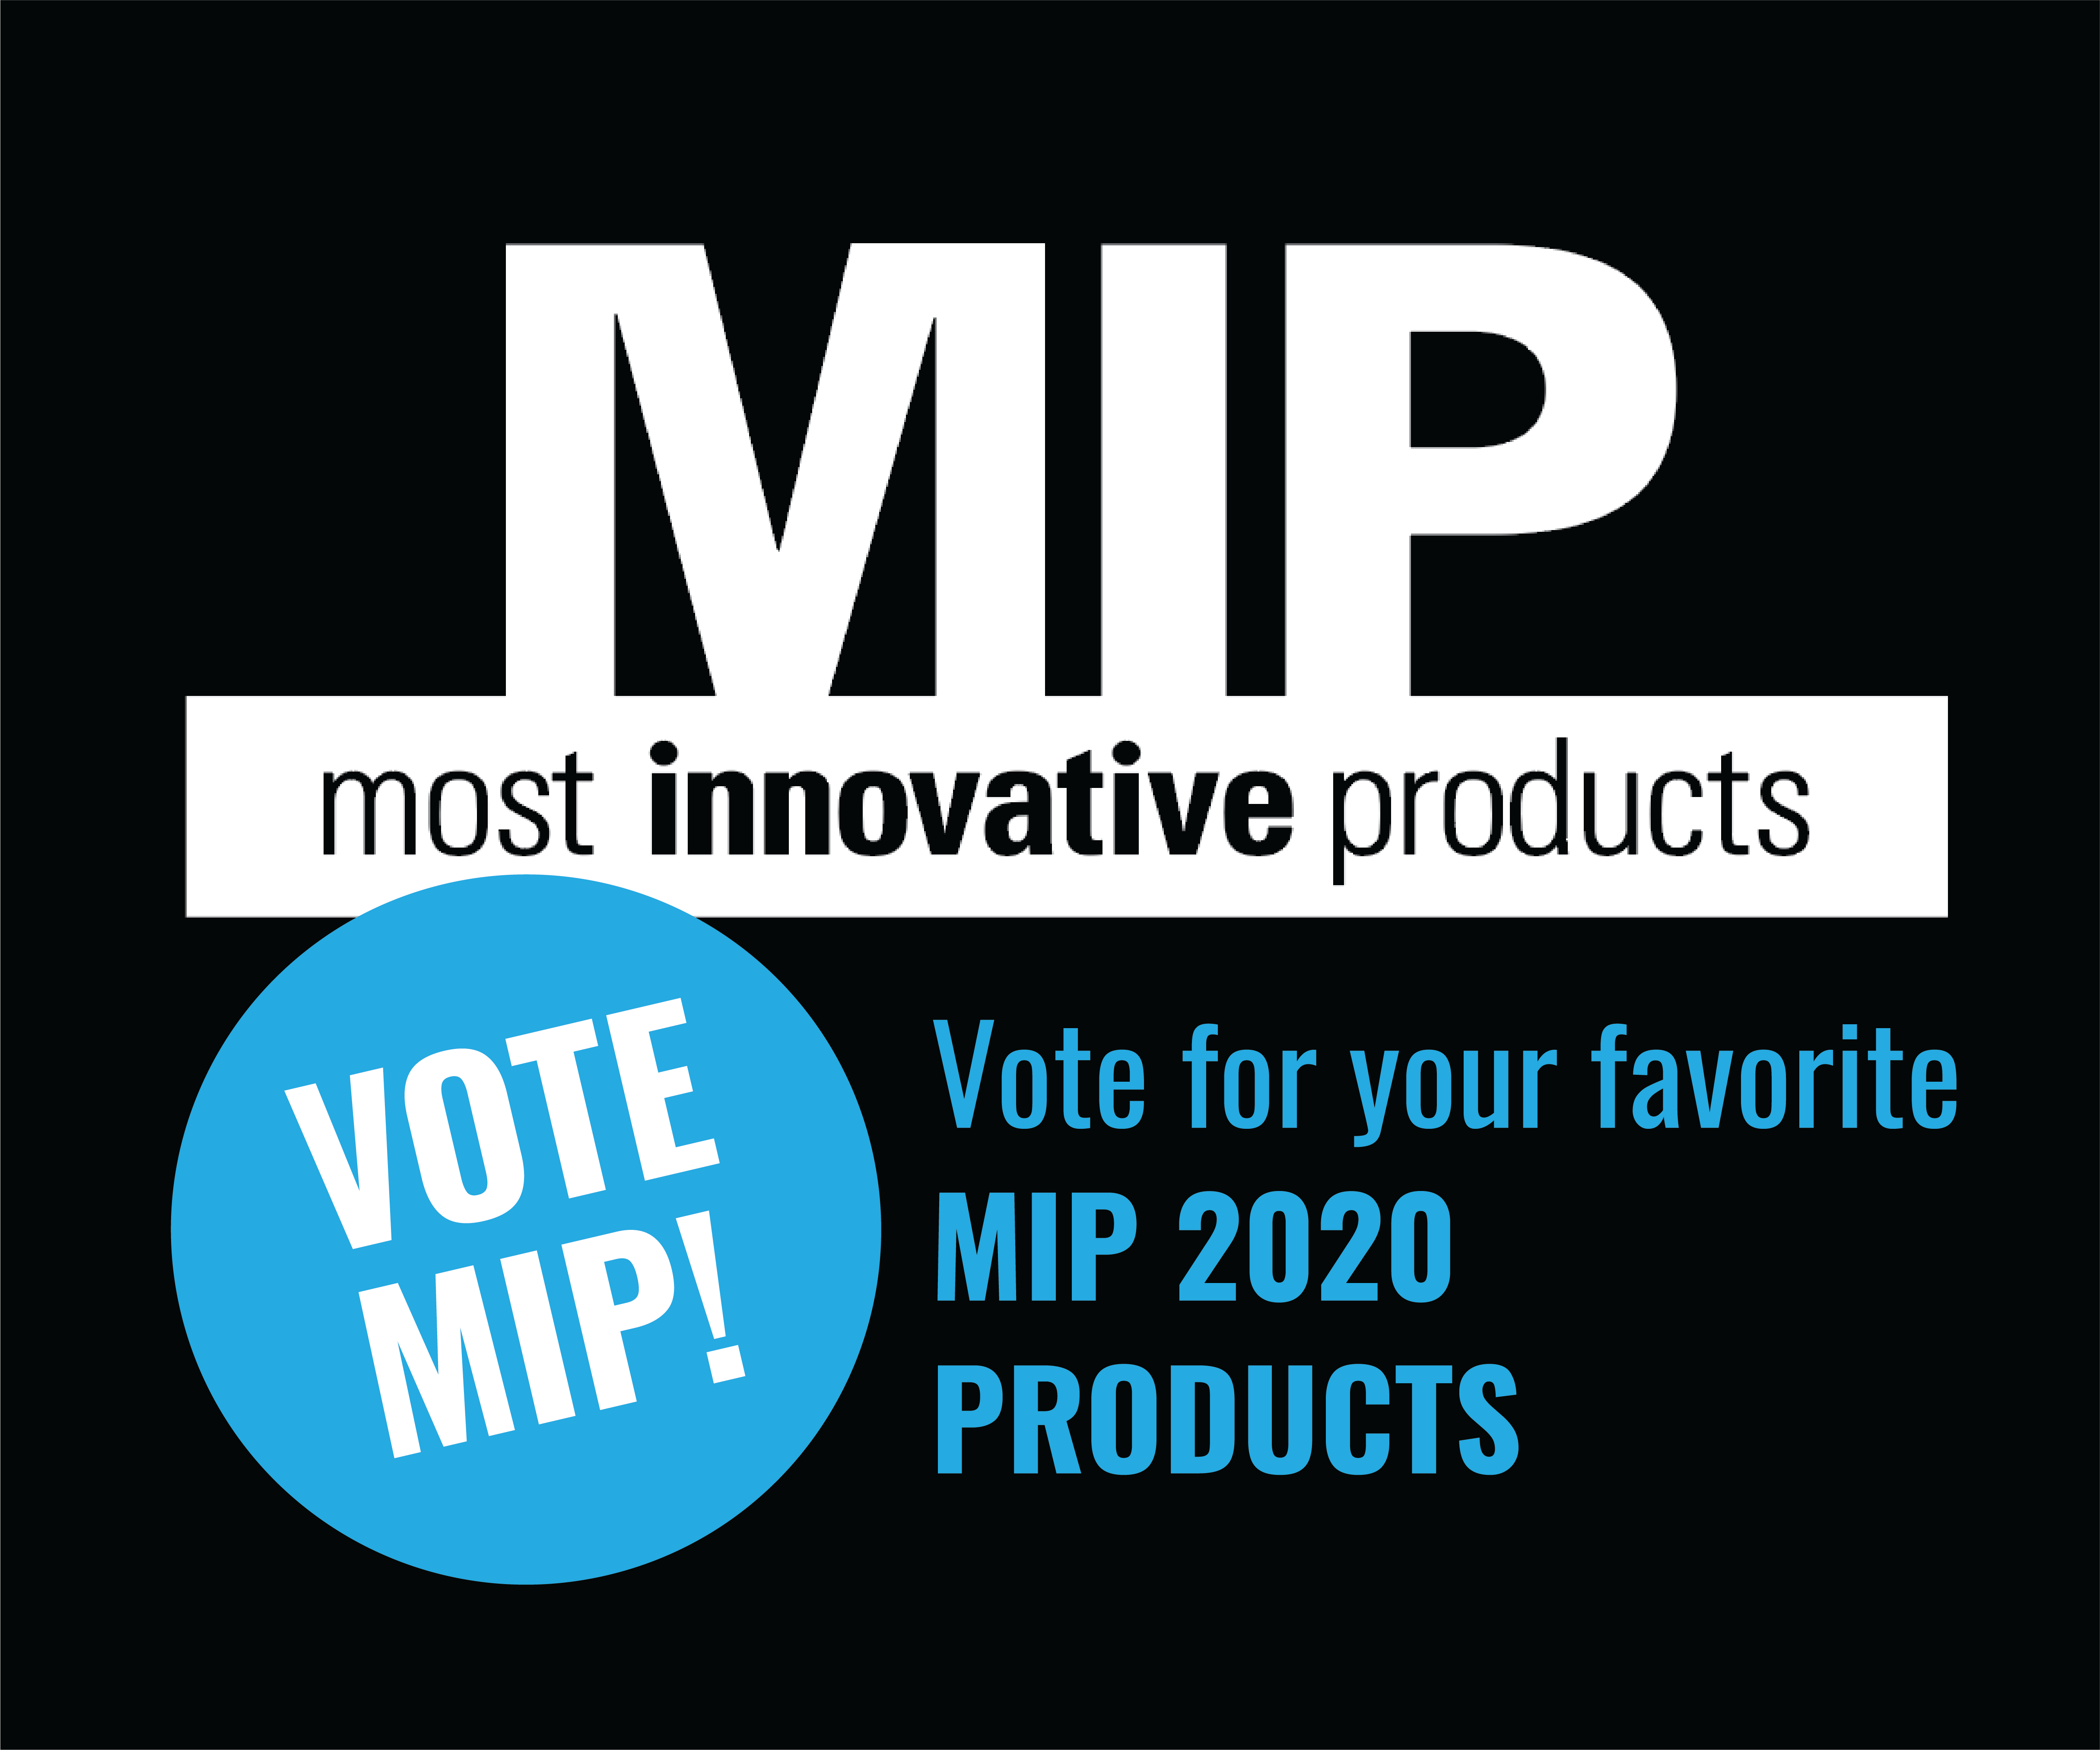 Vote for your favorite most innovative products.